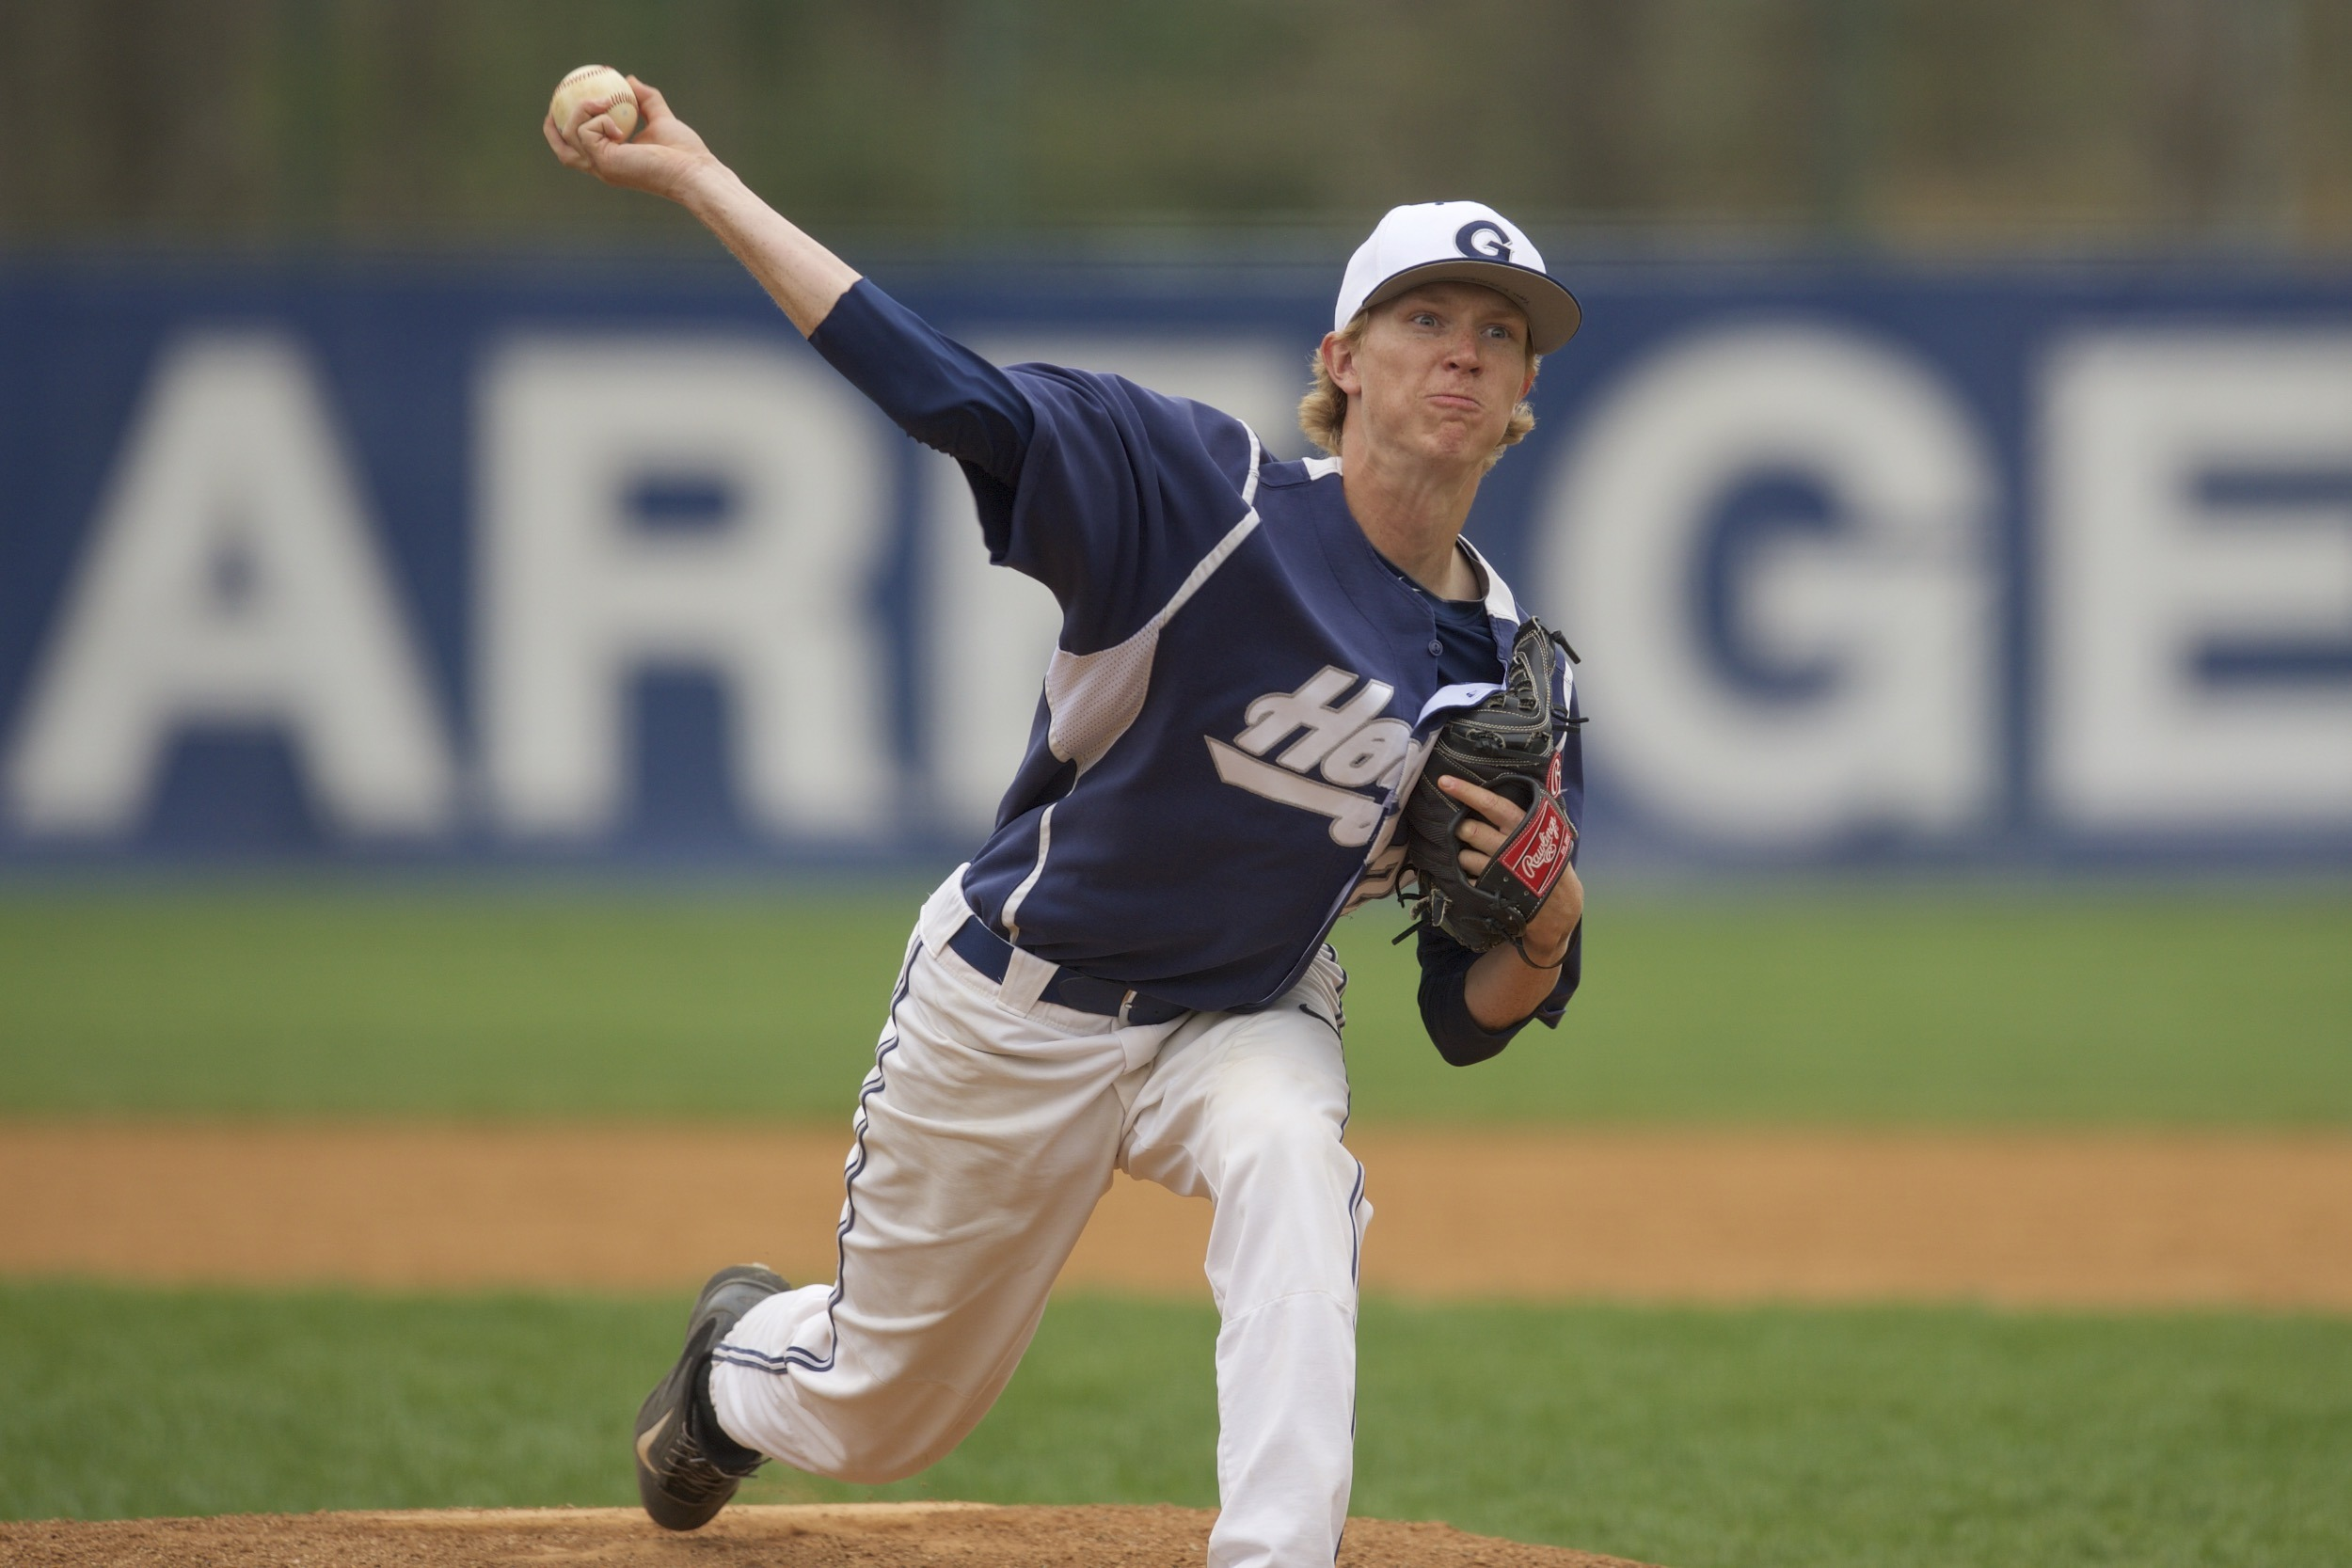 Simon Mathews fired his third-consecutive complete game in game one.